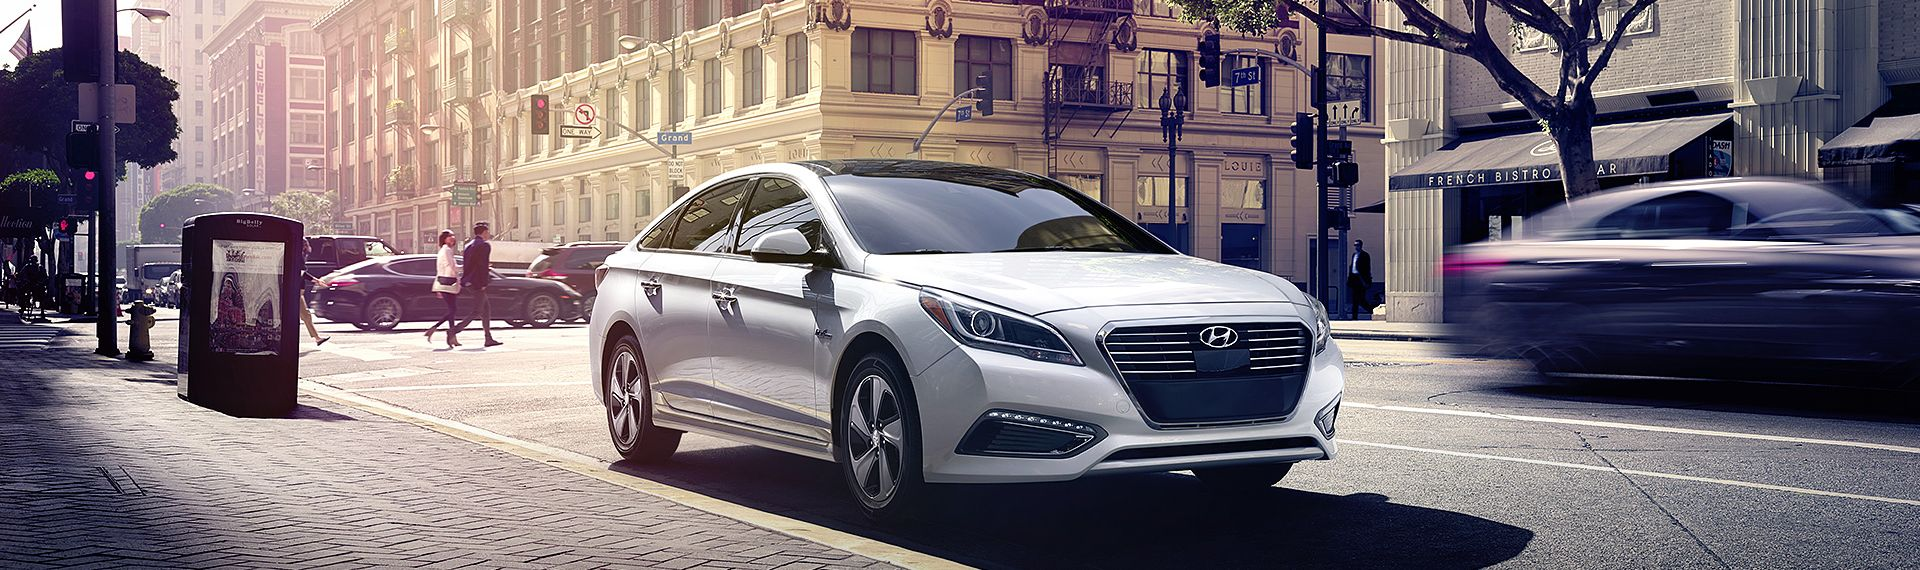 2017 Hyundai Sonata Hybrid for Sale in Capitol Heights, MD